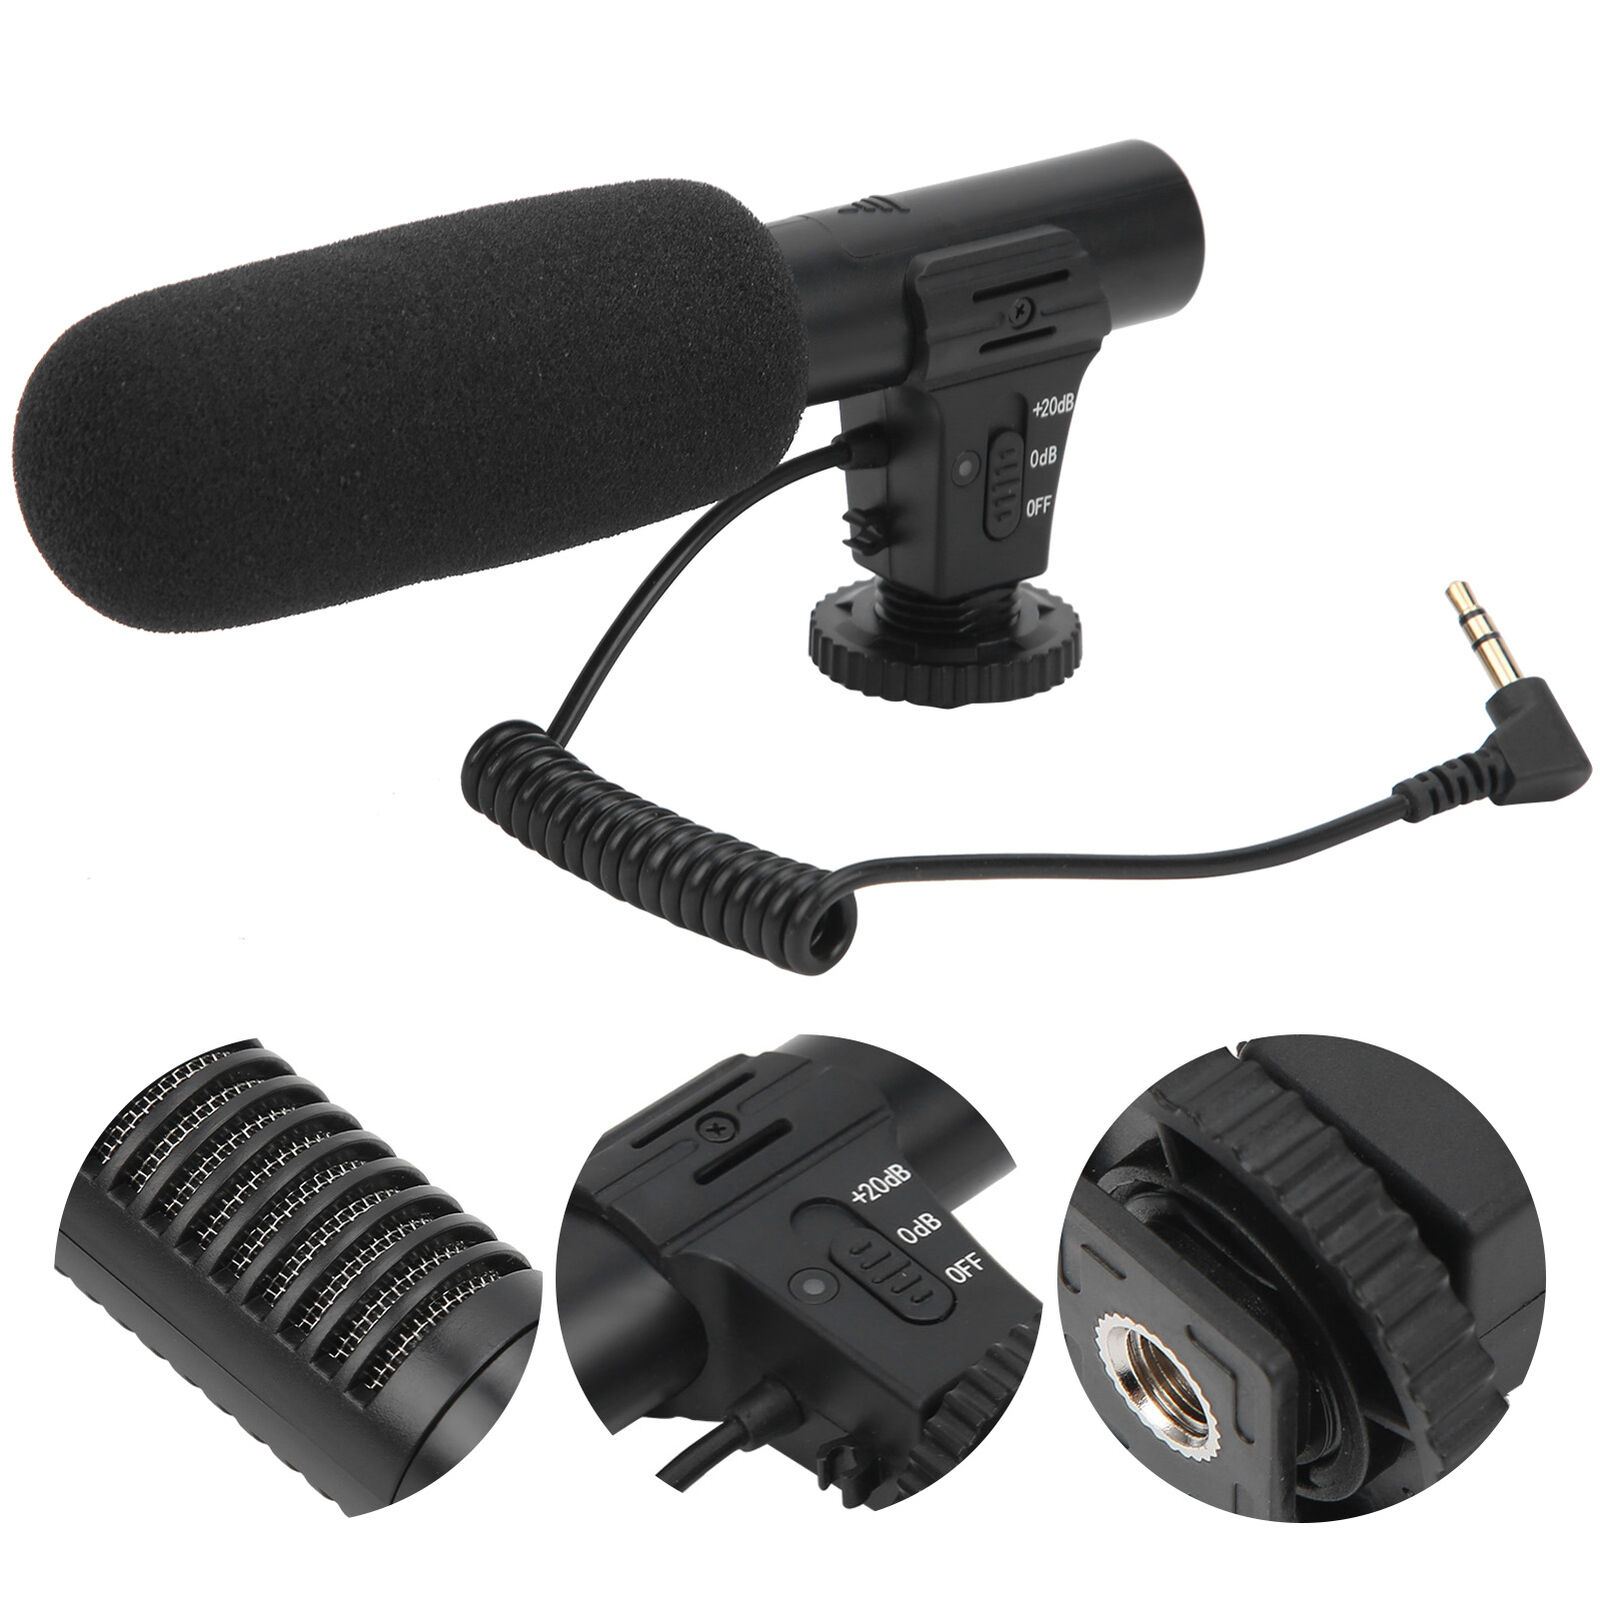 3.5mm Condenser Hypercardioid Microphone Video Recording for DJI OSMO POCKET 2